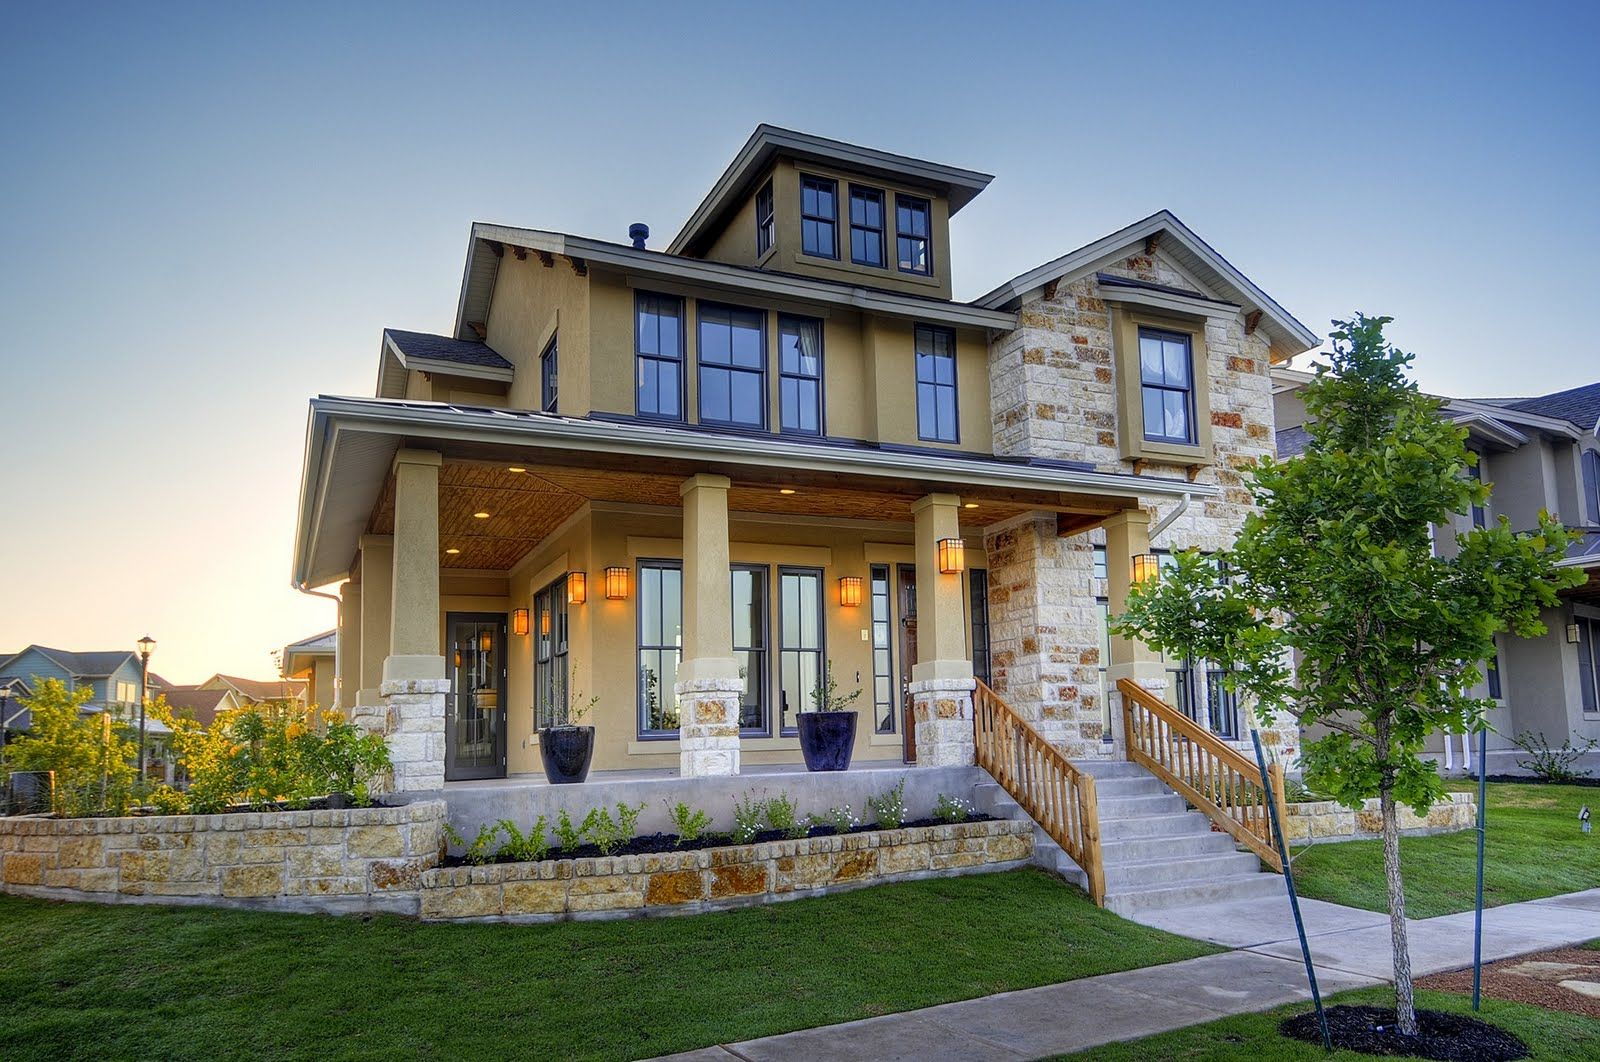 New home designs latest.: Modern homes designs front views ...